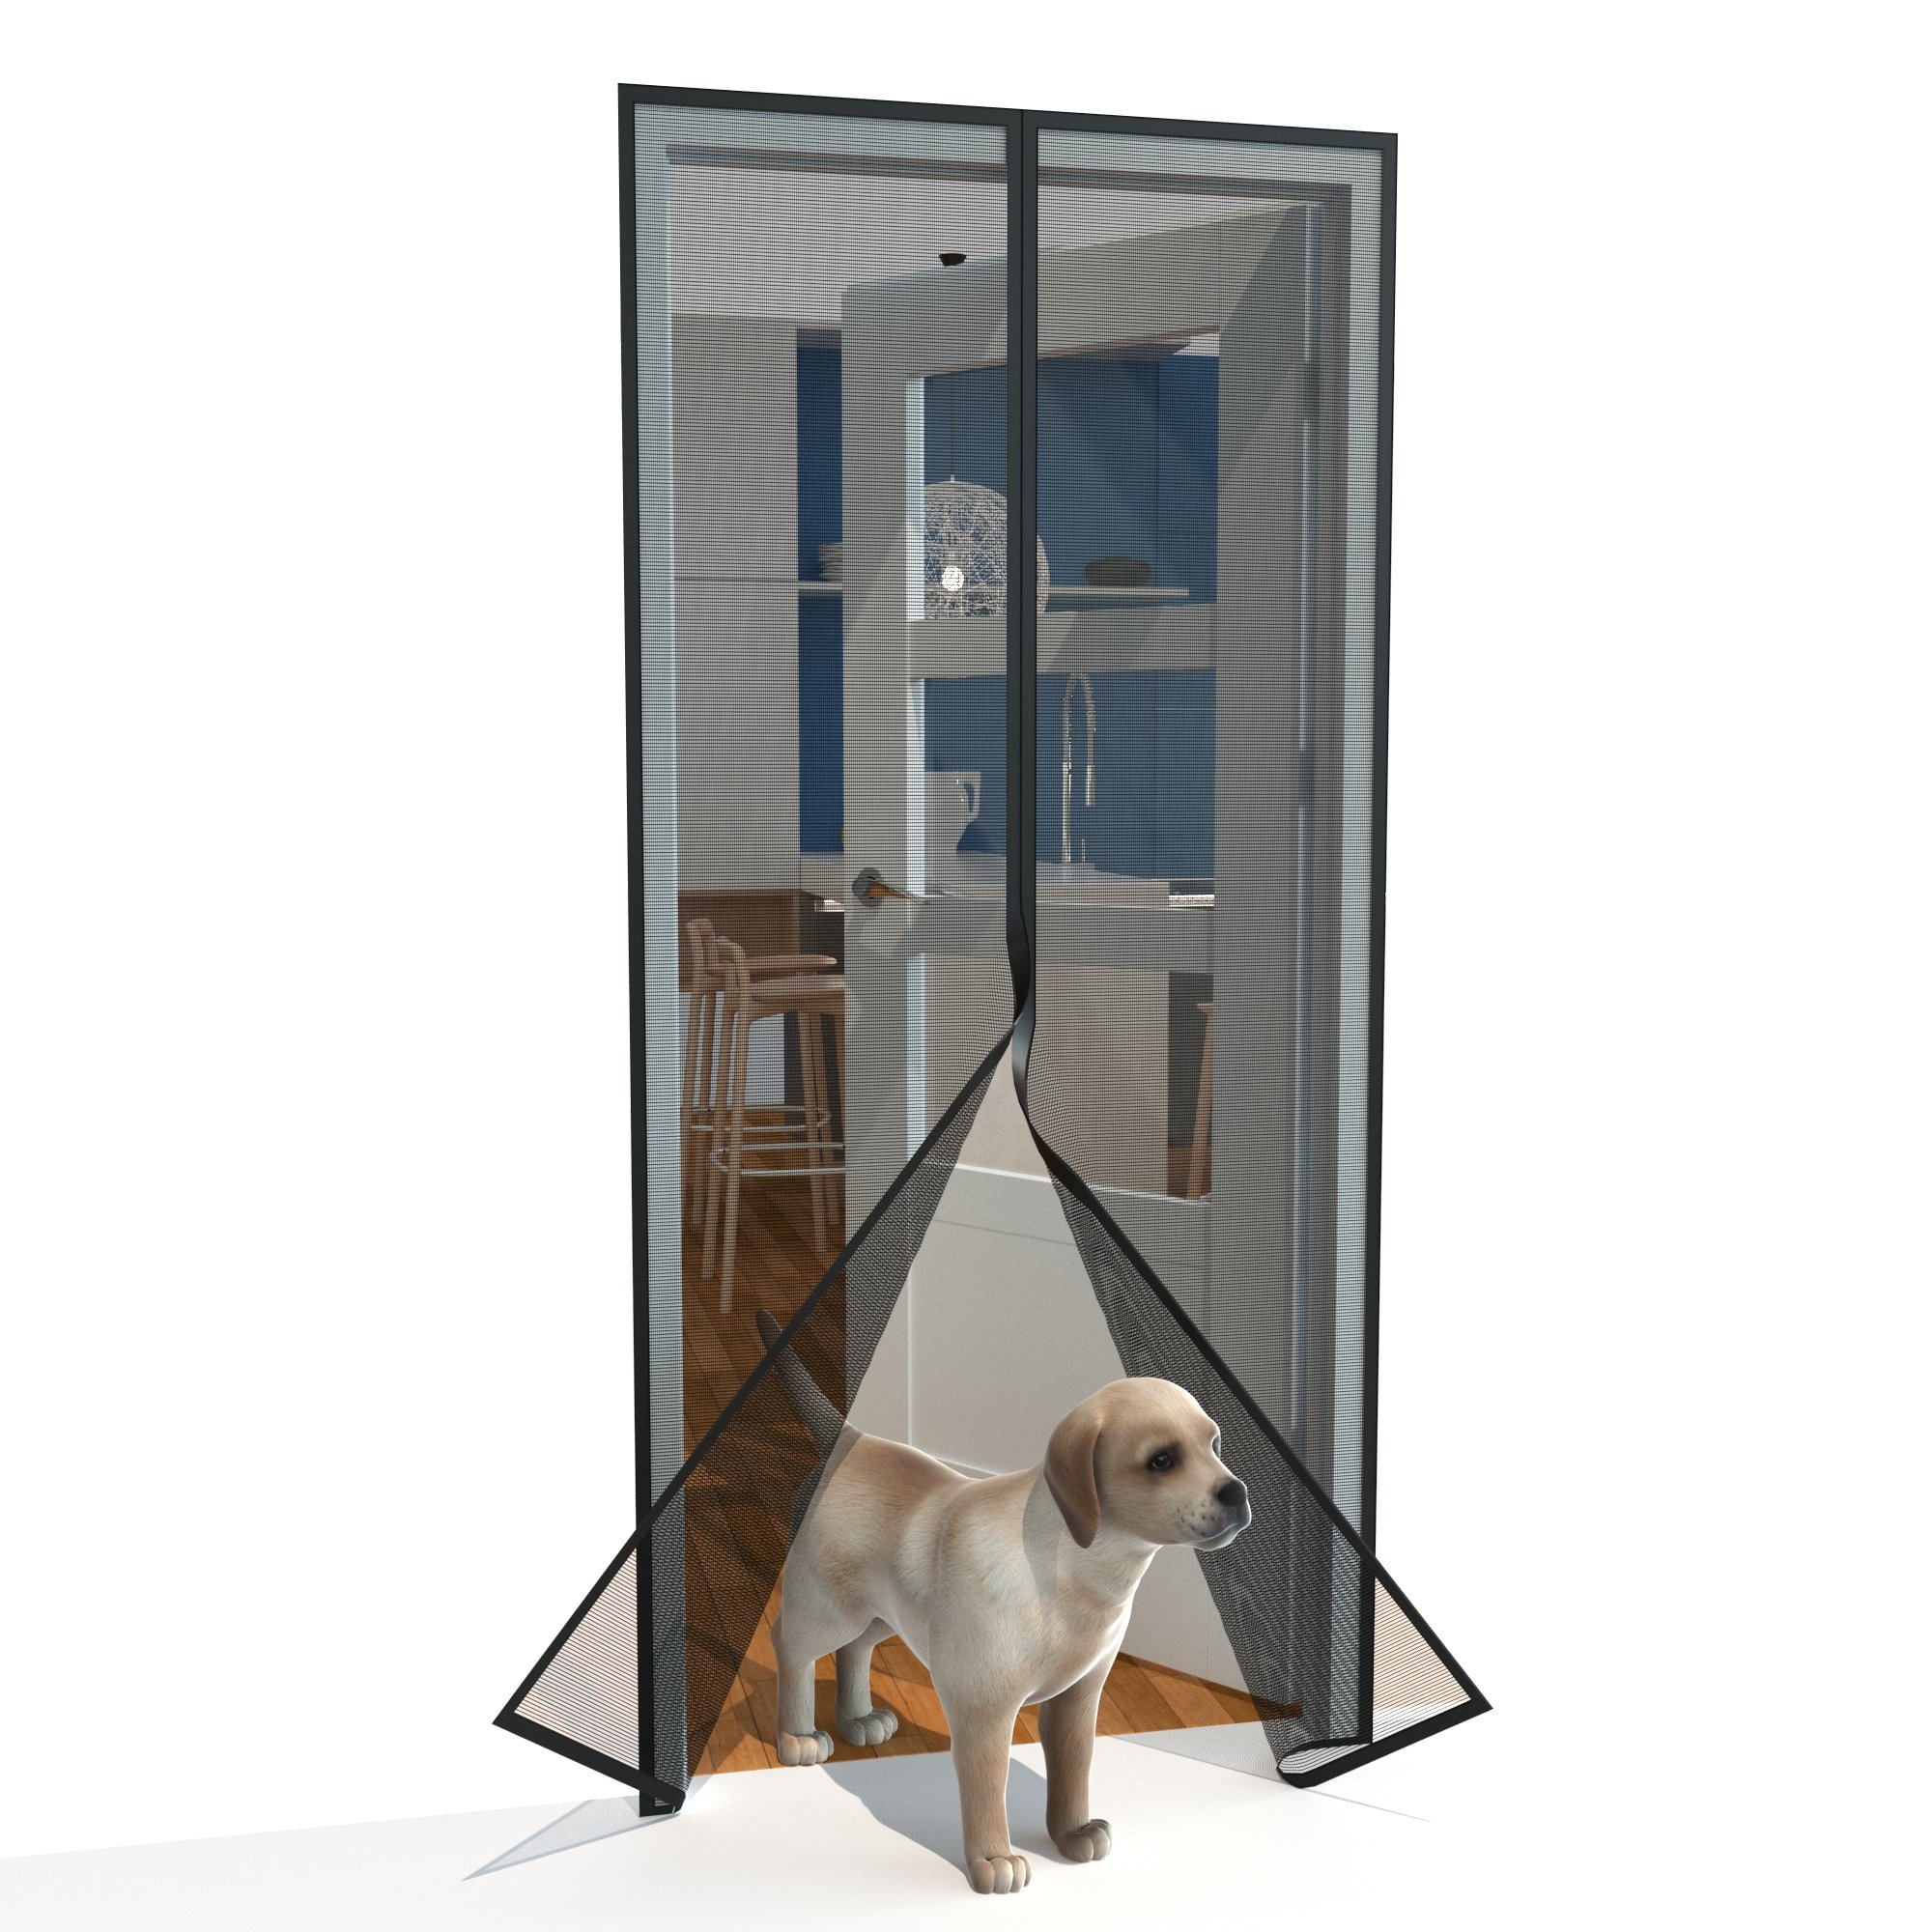 Home Diamonds Ultra Heavy Duty Fiberglass Magnetic Mesh Screen Door Full Frame Velcro, 28 Strong Magnets, Fit Doors up to 34 x 81-inches by Home Diamonds (Image #6)